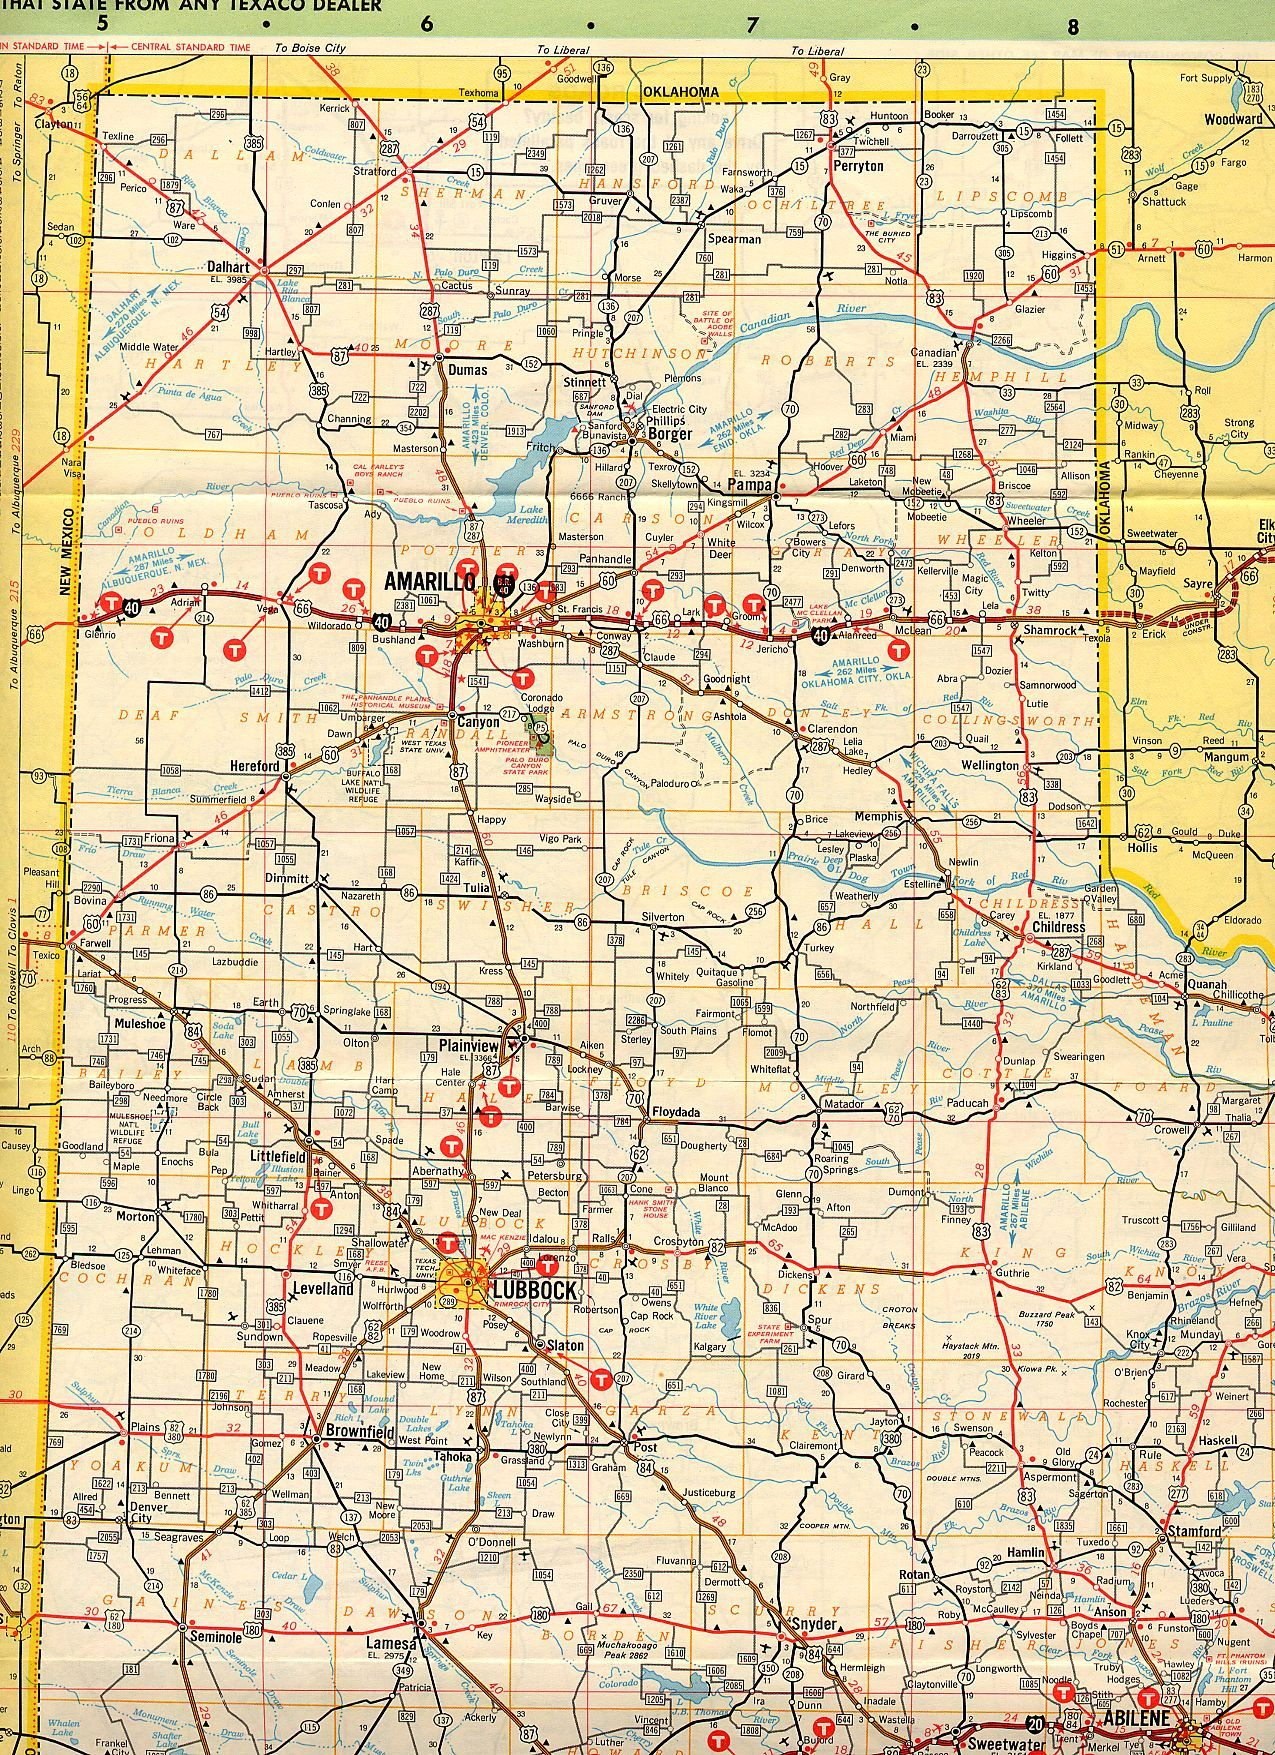 Map Of The Texas Panhandle | G&g 60Th Anniversary Party | Pinterest - Route 66 Texas Map